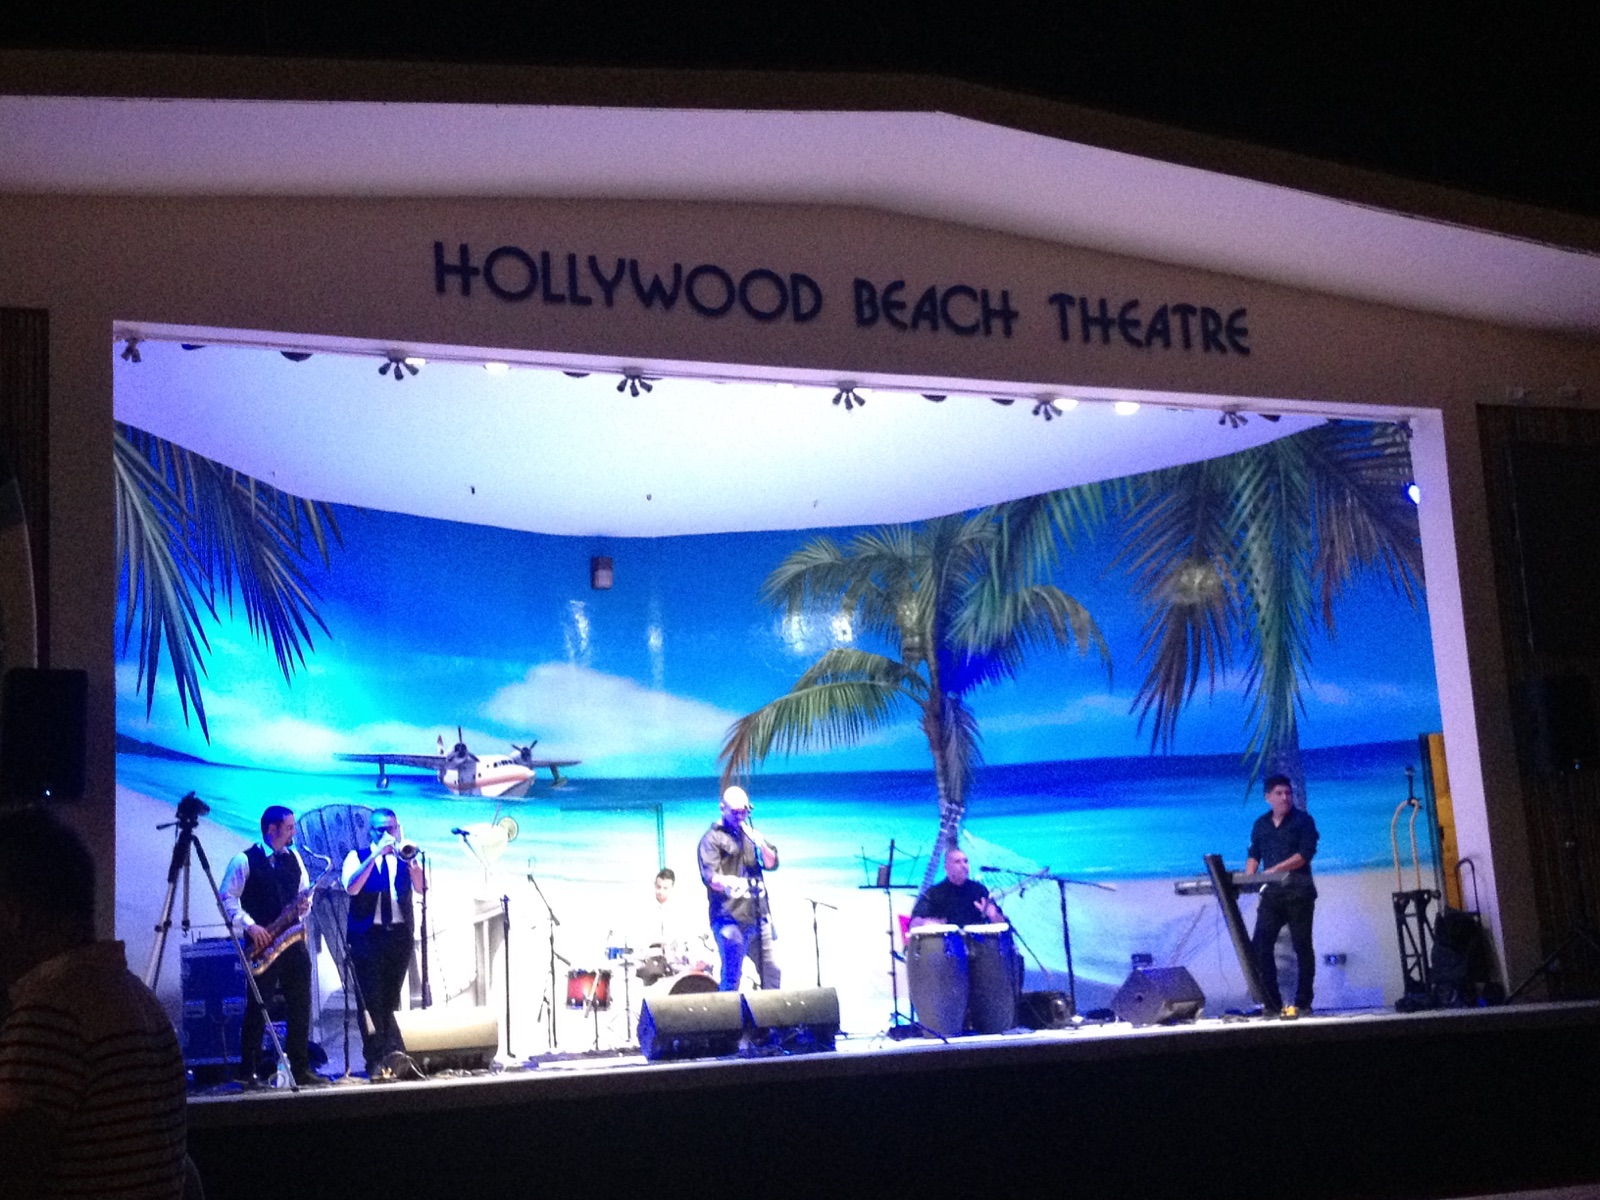 Hollywood Beach Theatre